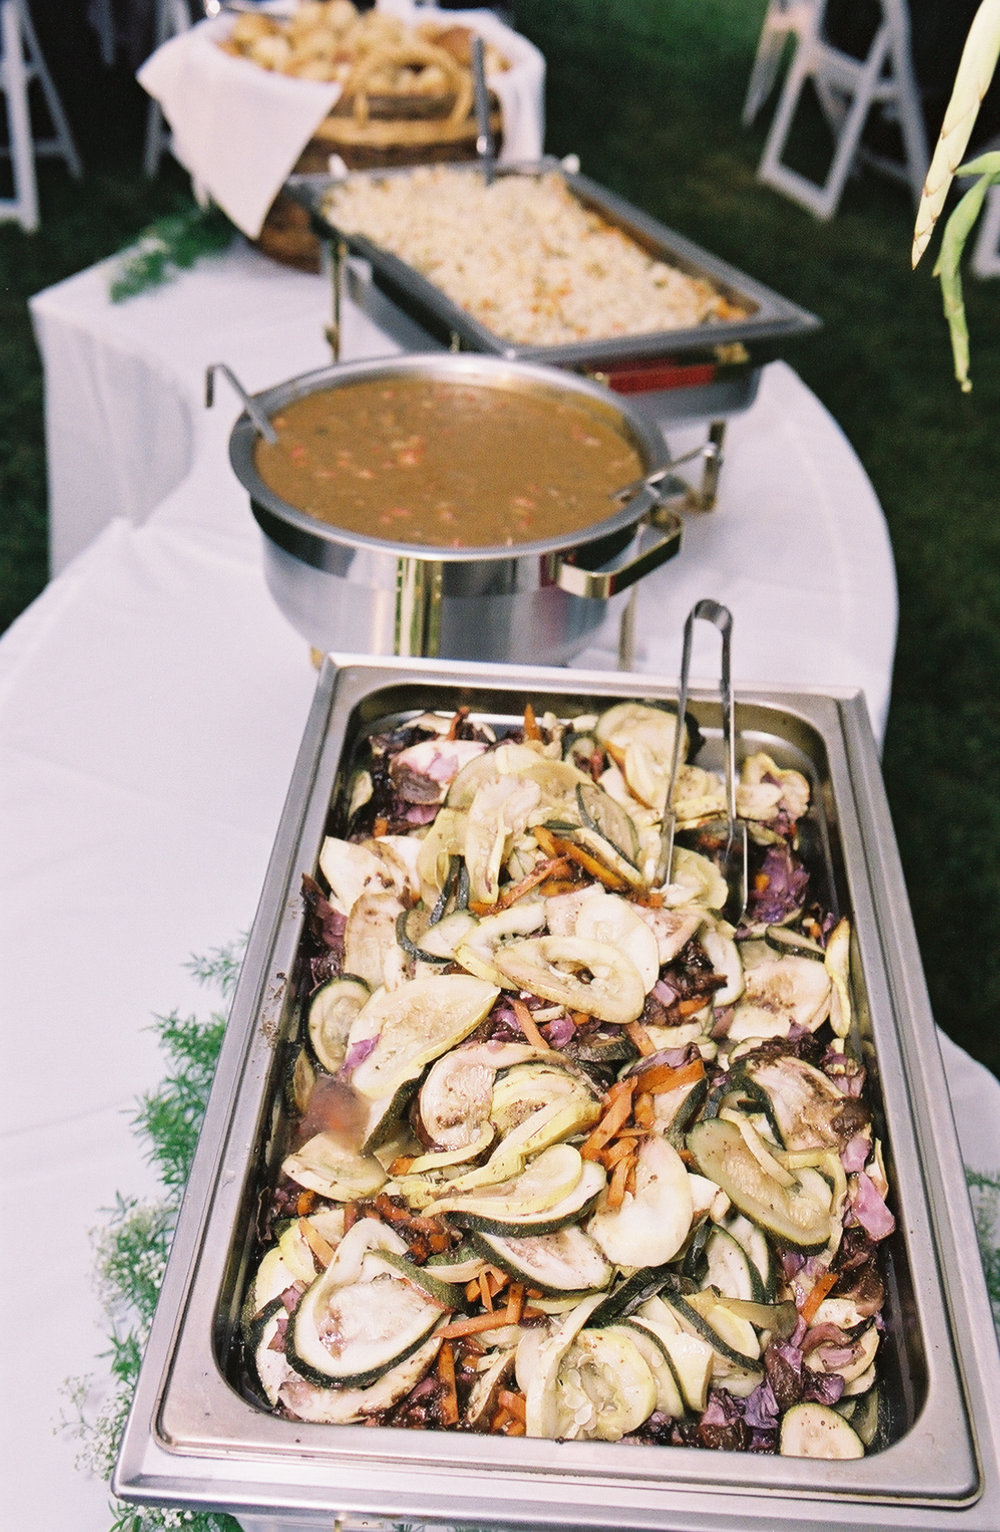 stew and fresh roasted vegetables catering setup